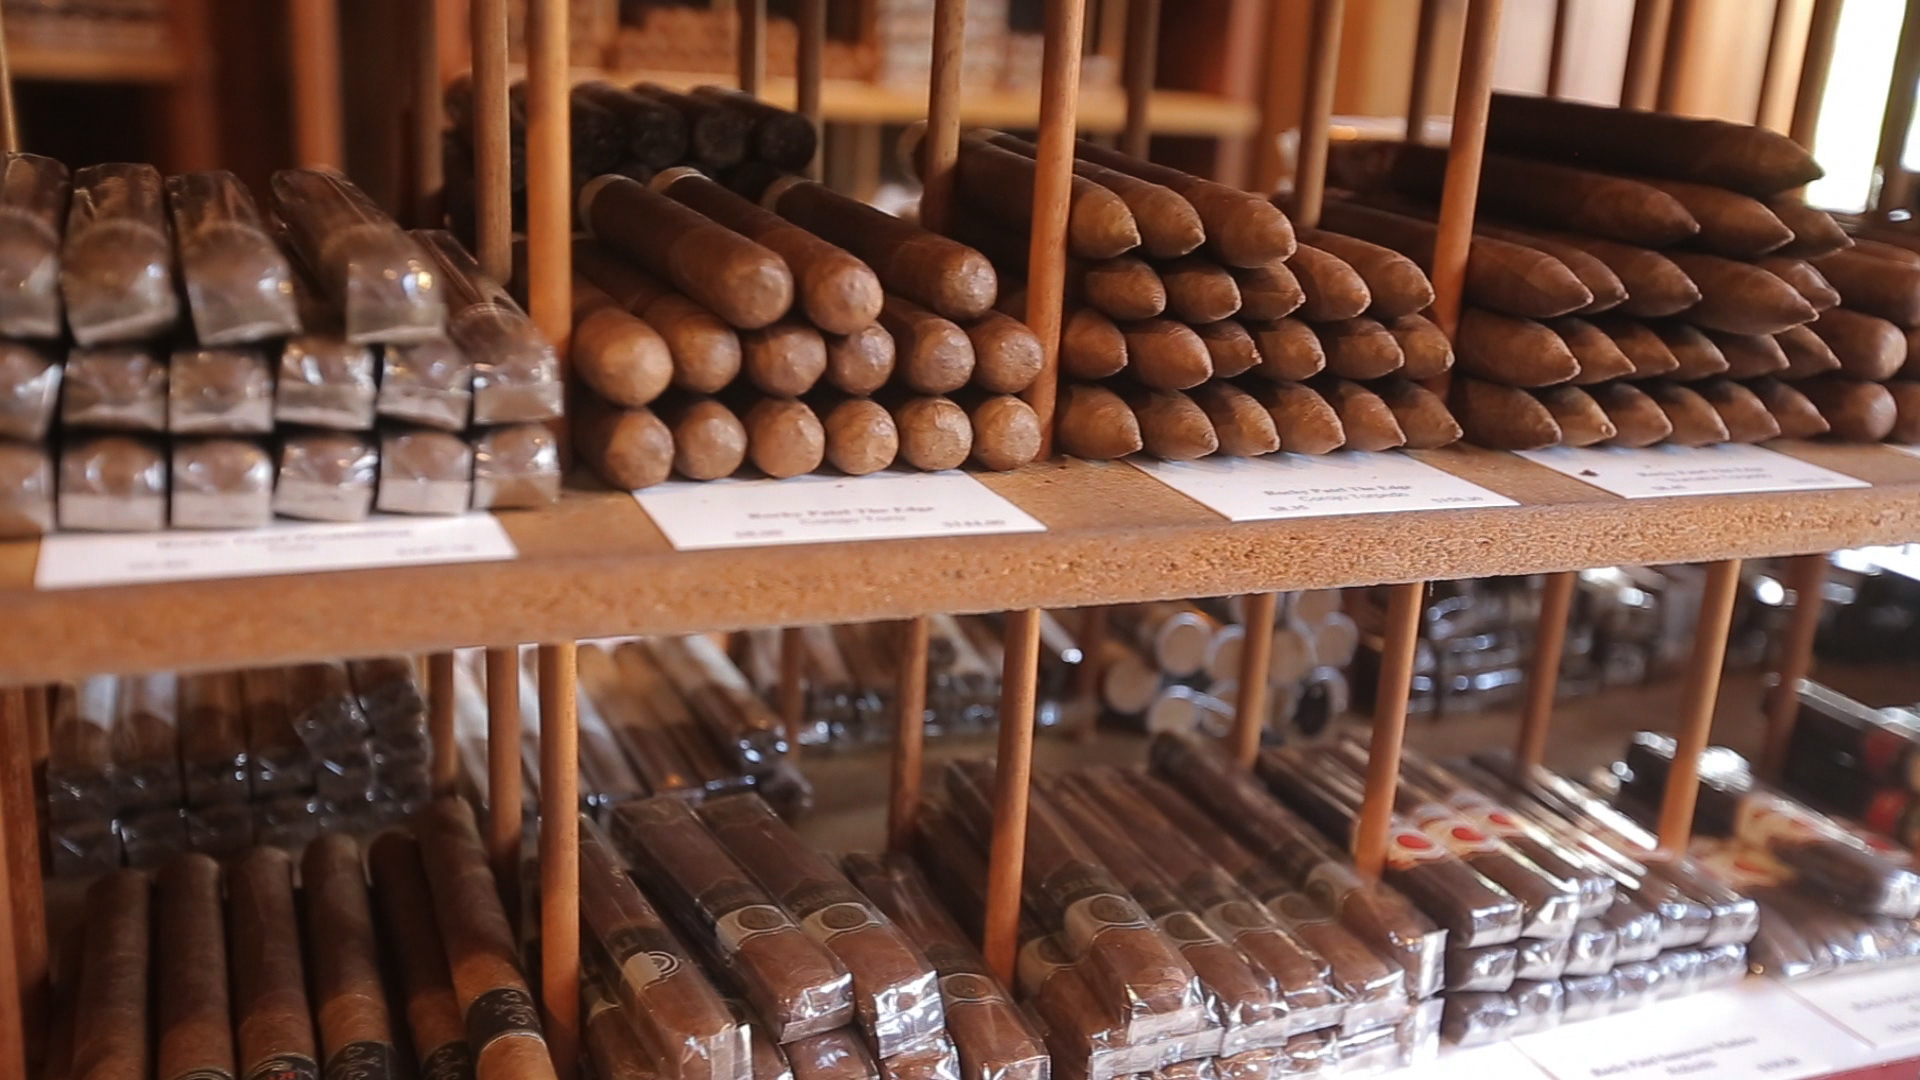 Cigars in the Humidor at the  Tobacco Shop of Ridgewood.jpg